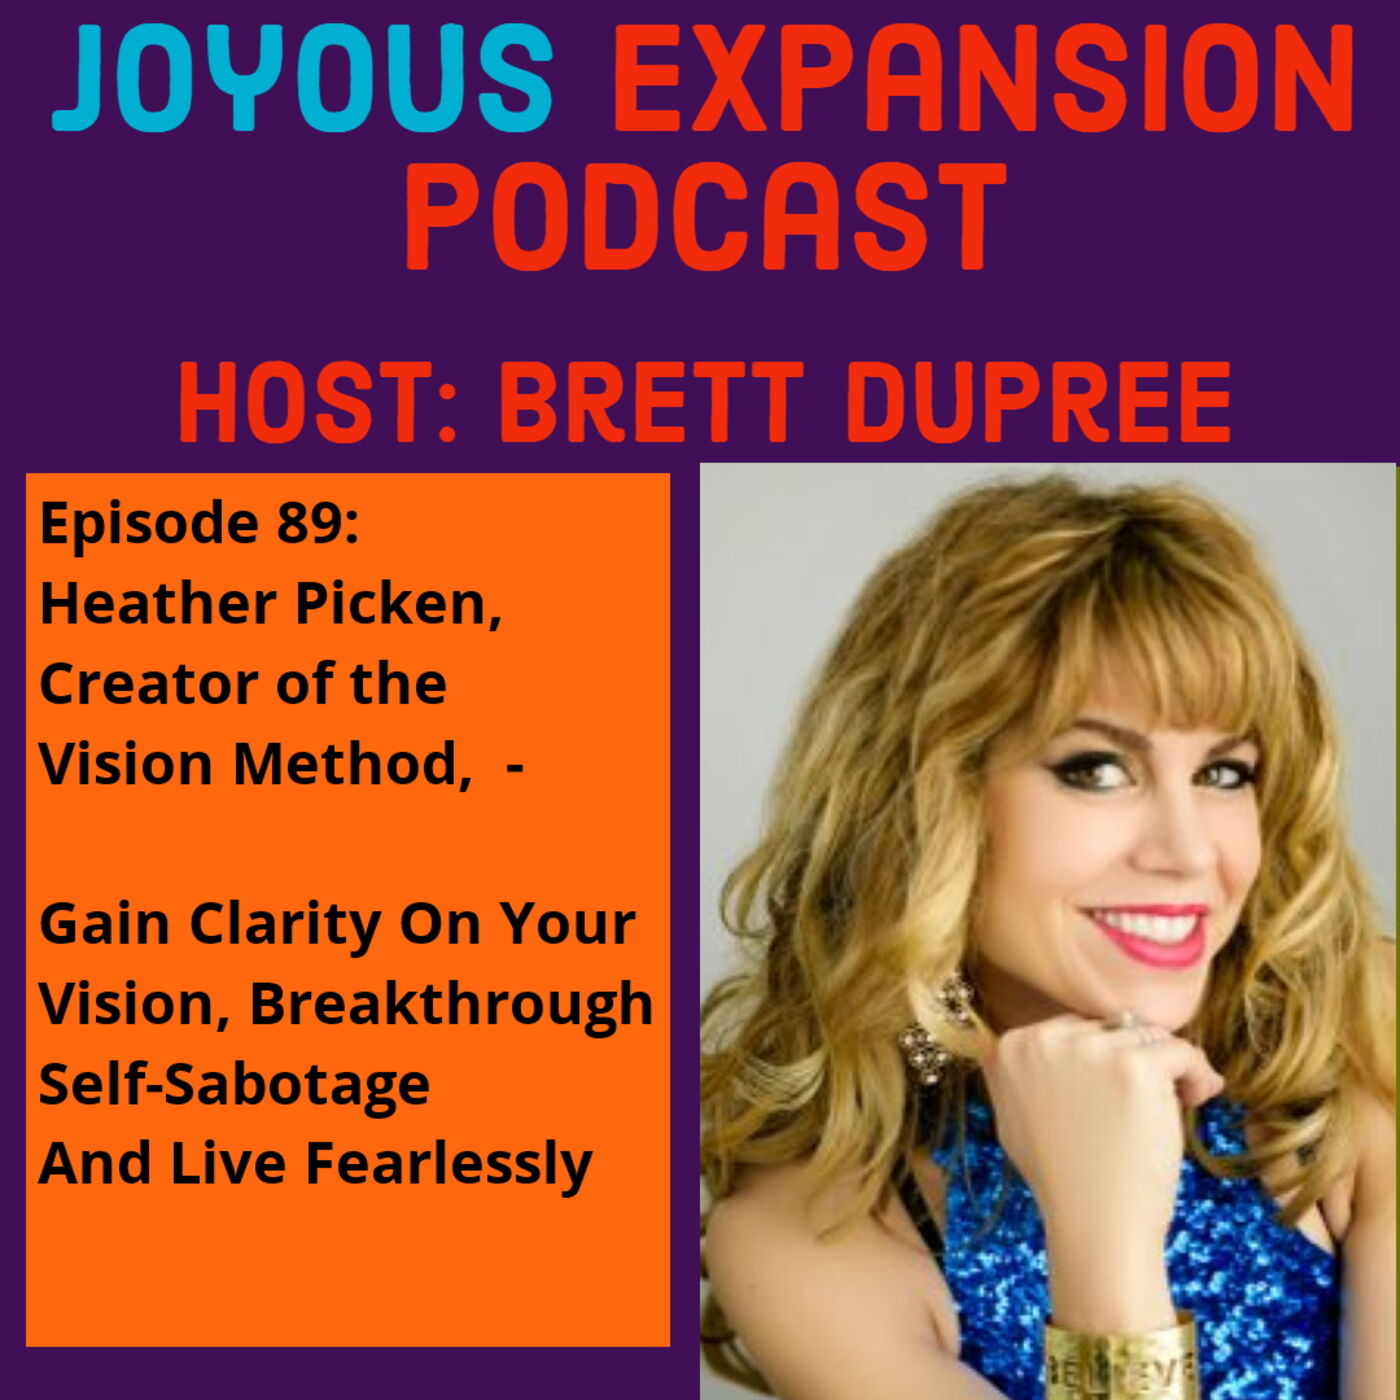 Joyous Expansion #89 - Heather Picken - Gain Clarity on Your Vision, Breakthrough Self-Sabotage  And Live Fearlessly